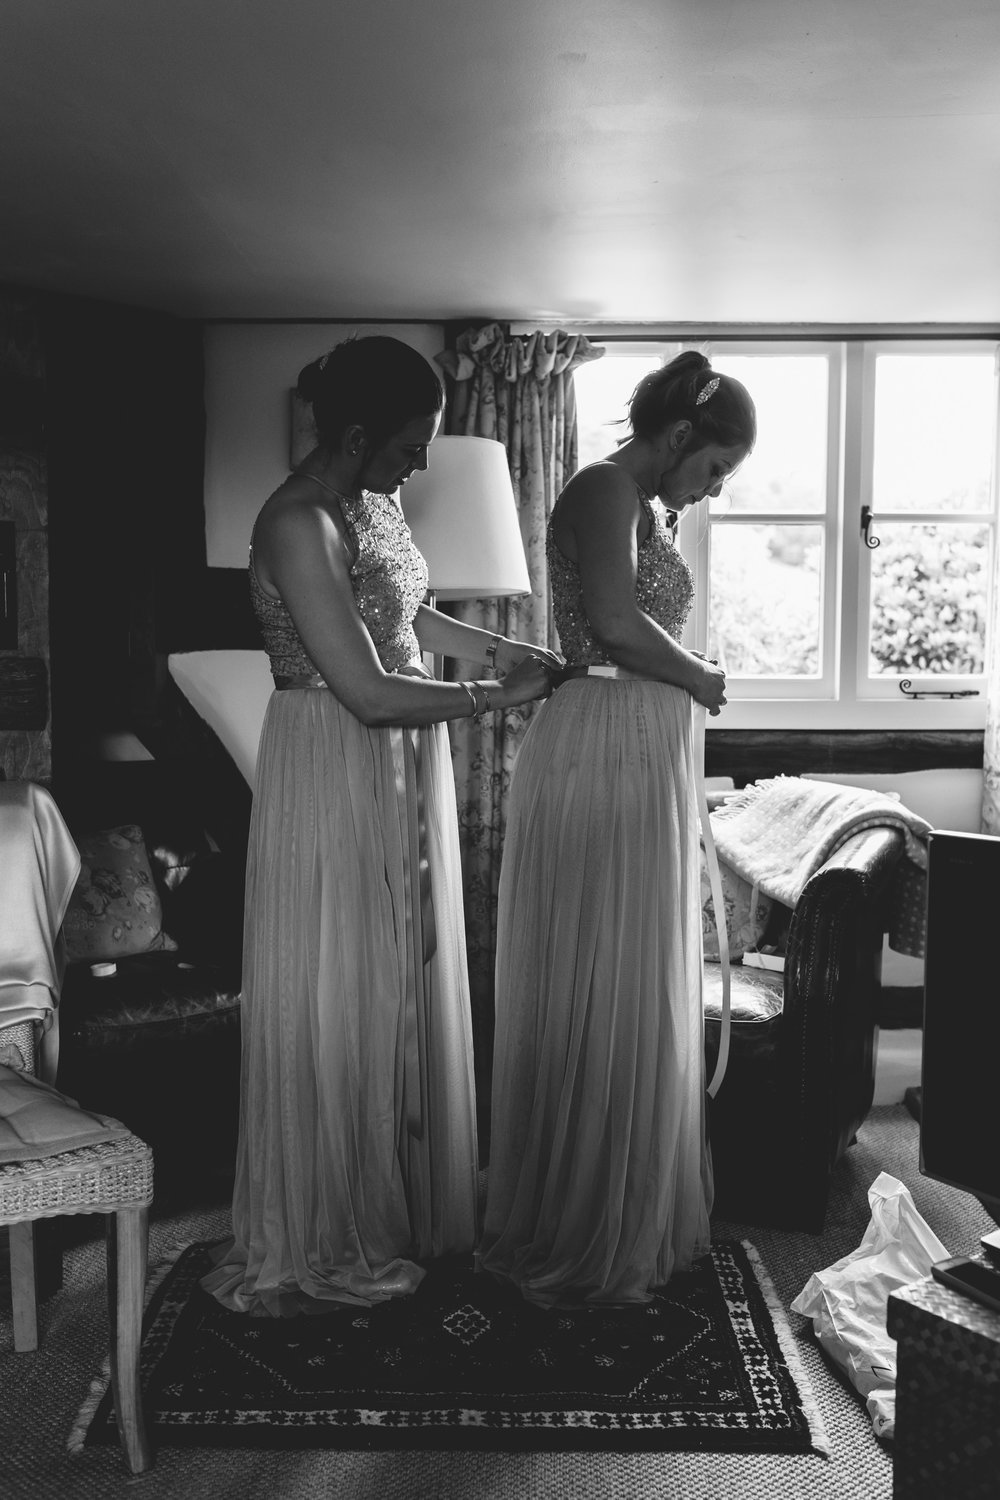 bridesmaids Birmingham photographer wedding country artistic wedding photography94.jpg